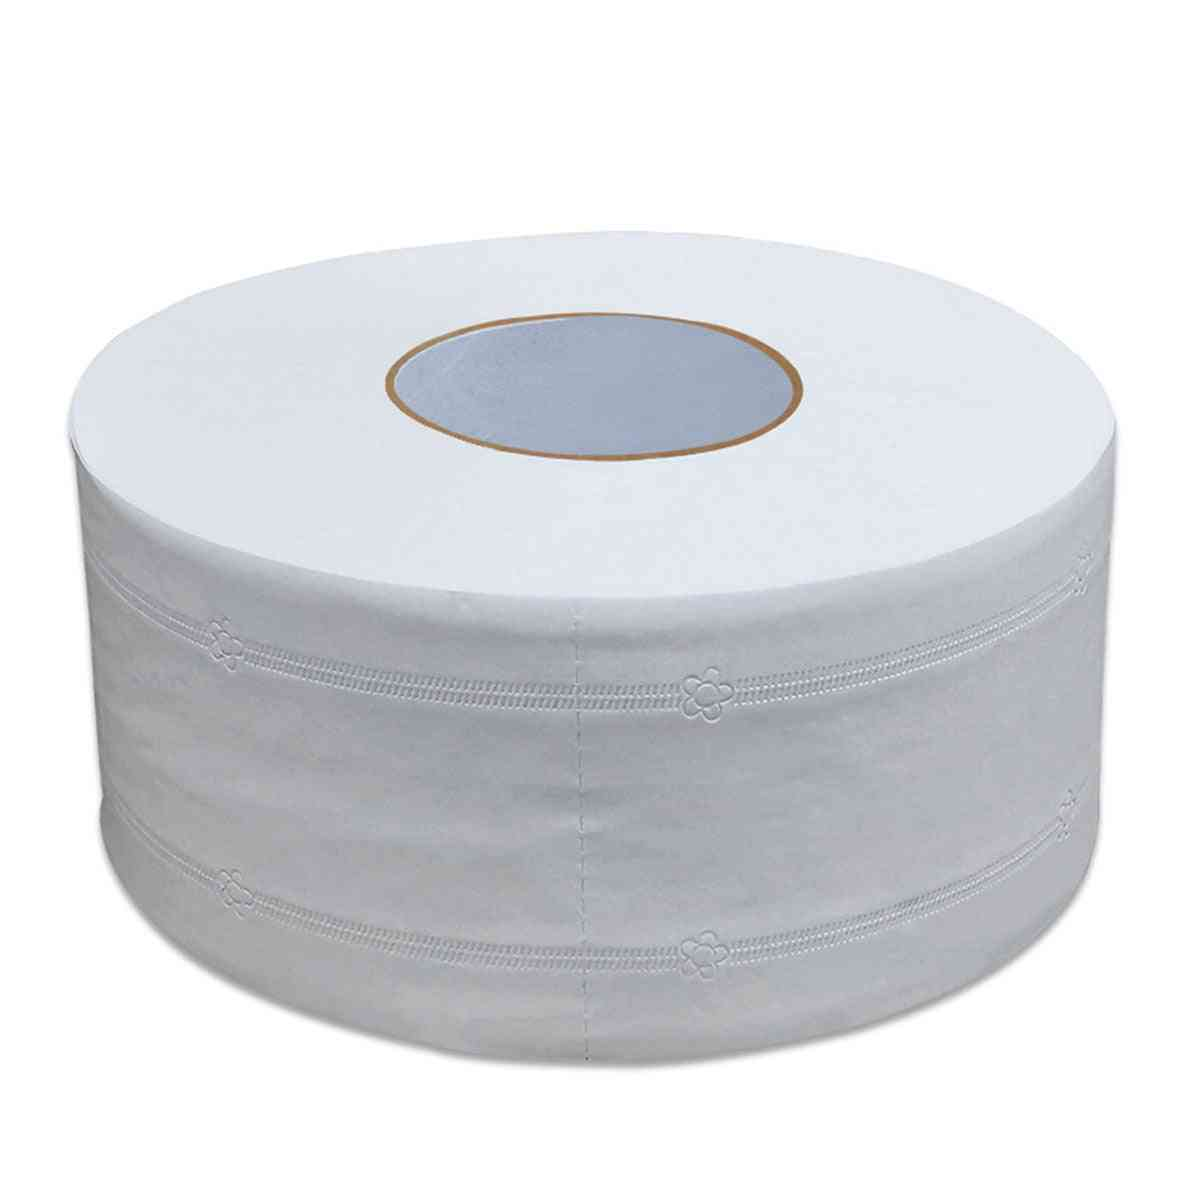 1 Wood Pulp Soft Roll - Toilet Paper With 4 Layer